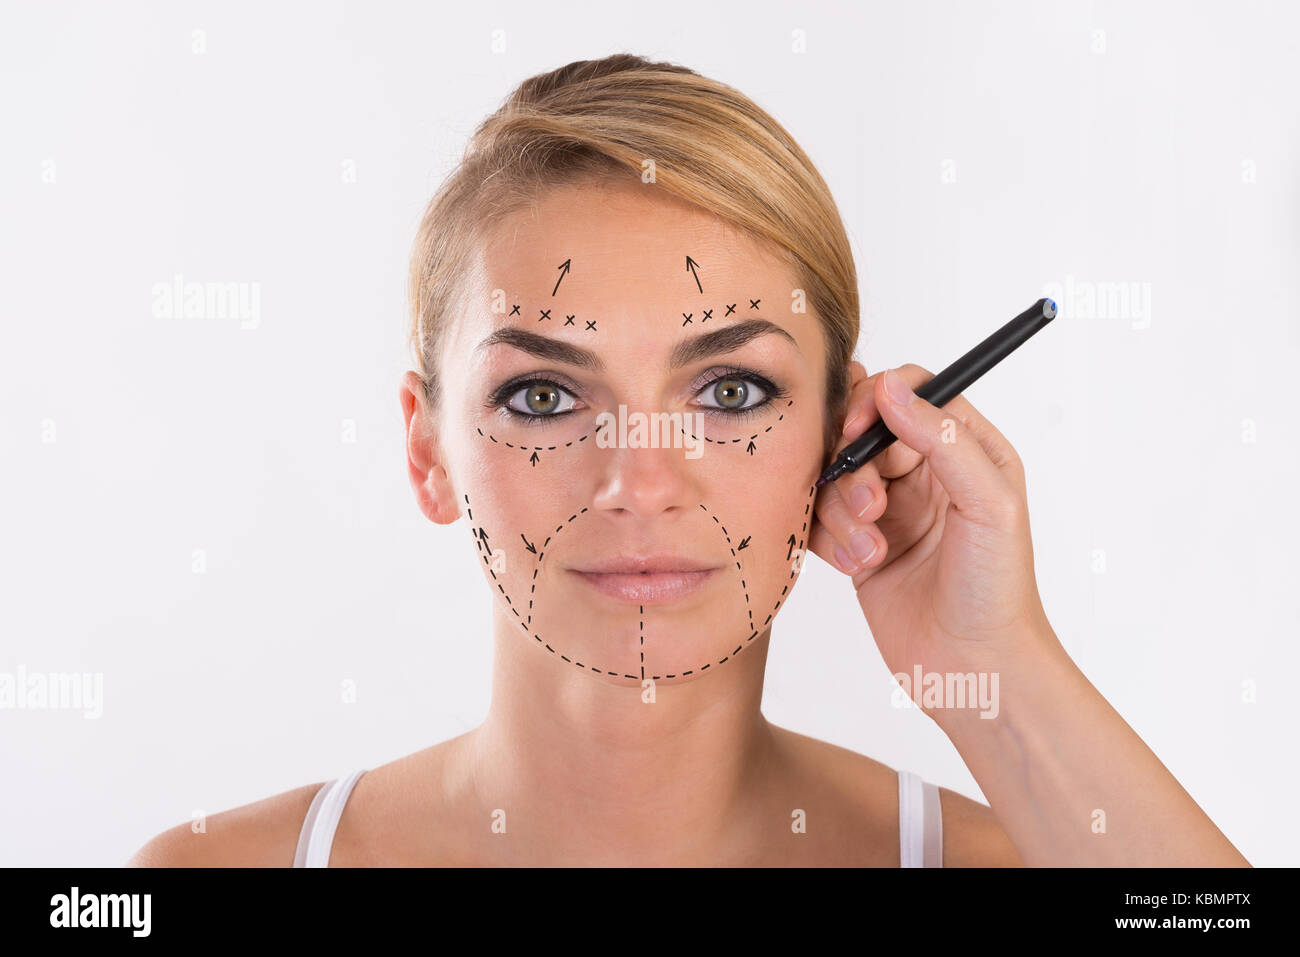 Portrait of young woman undergoing facelift surgery over white background Stock Photo